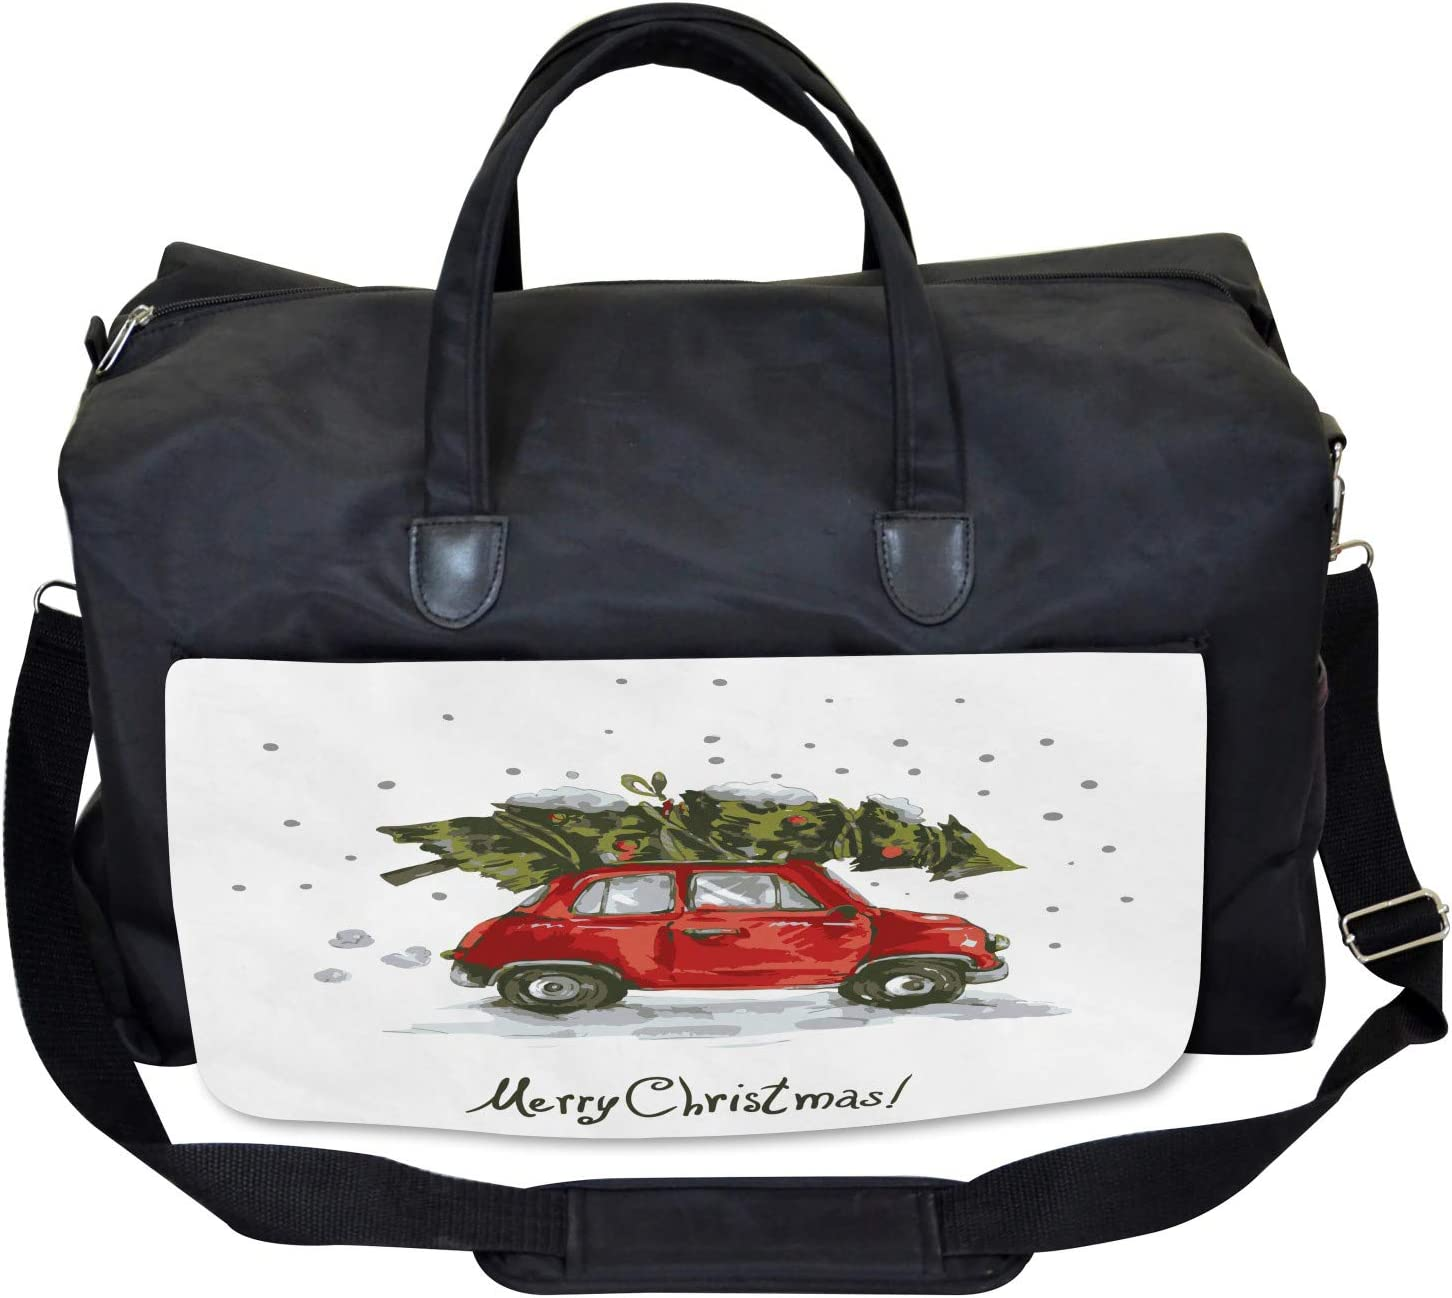 Retro Car with Tree Large Weekender Carry-on Ambesonne Christmas Gym Bag